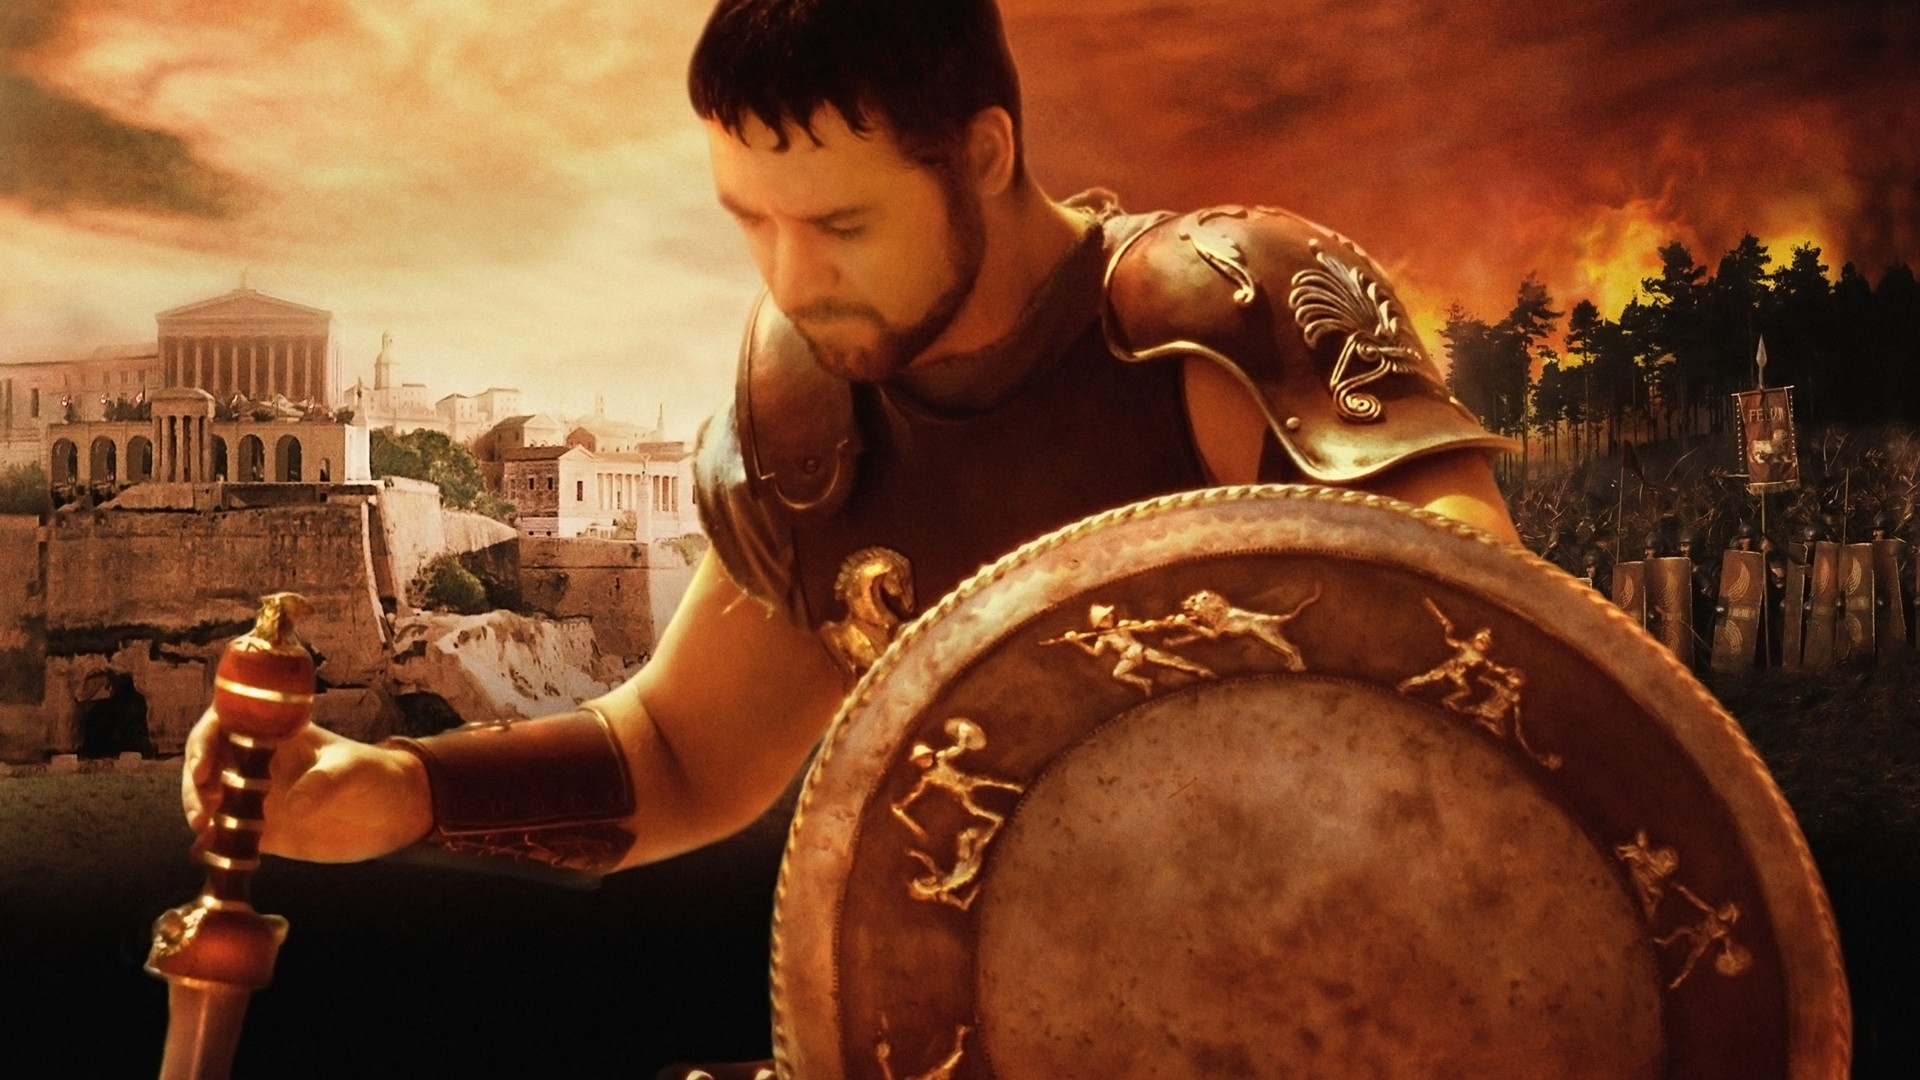 Movies Gladiator Movie Russell Crowe 1439x1403 Wallpaper: Gladiator (movie) Russell Crowe Wallpaper